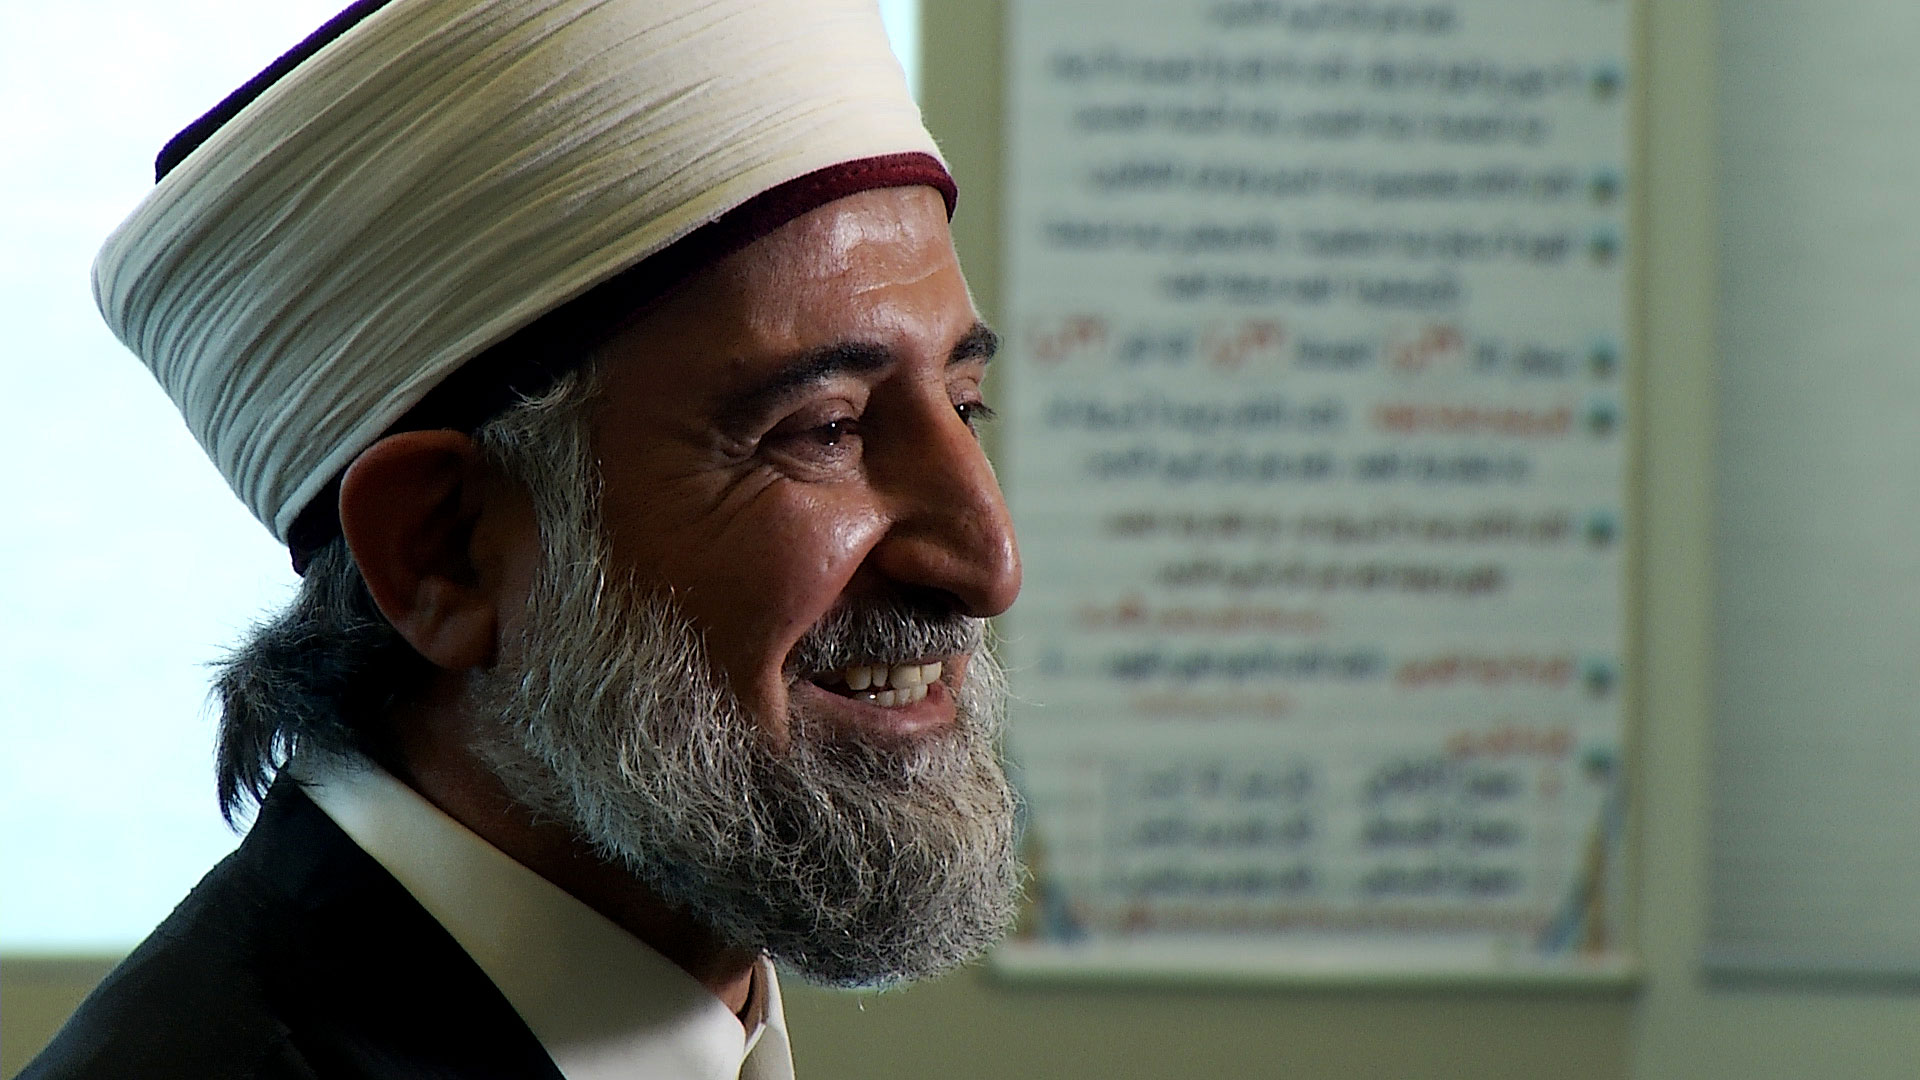 Imam Watheq Alobaidi of the Muslim Community Center of Tucson. May 18, 2020.